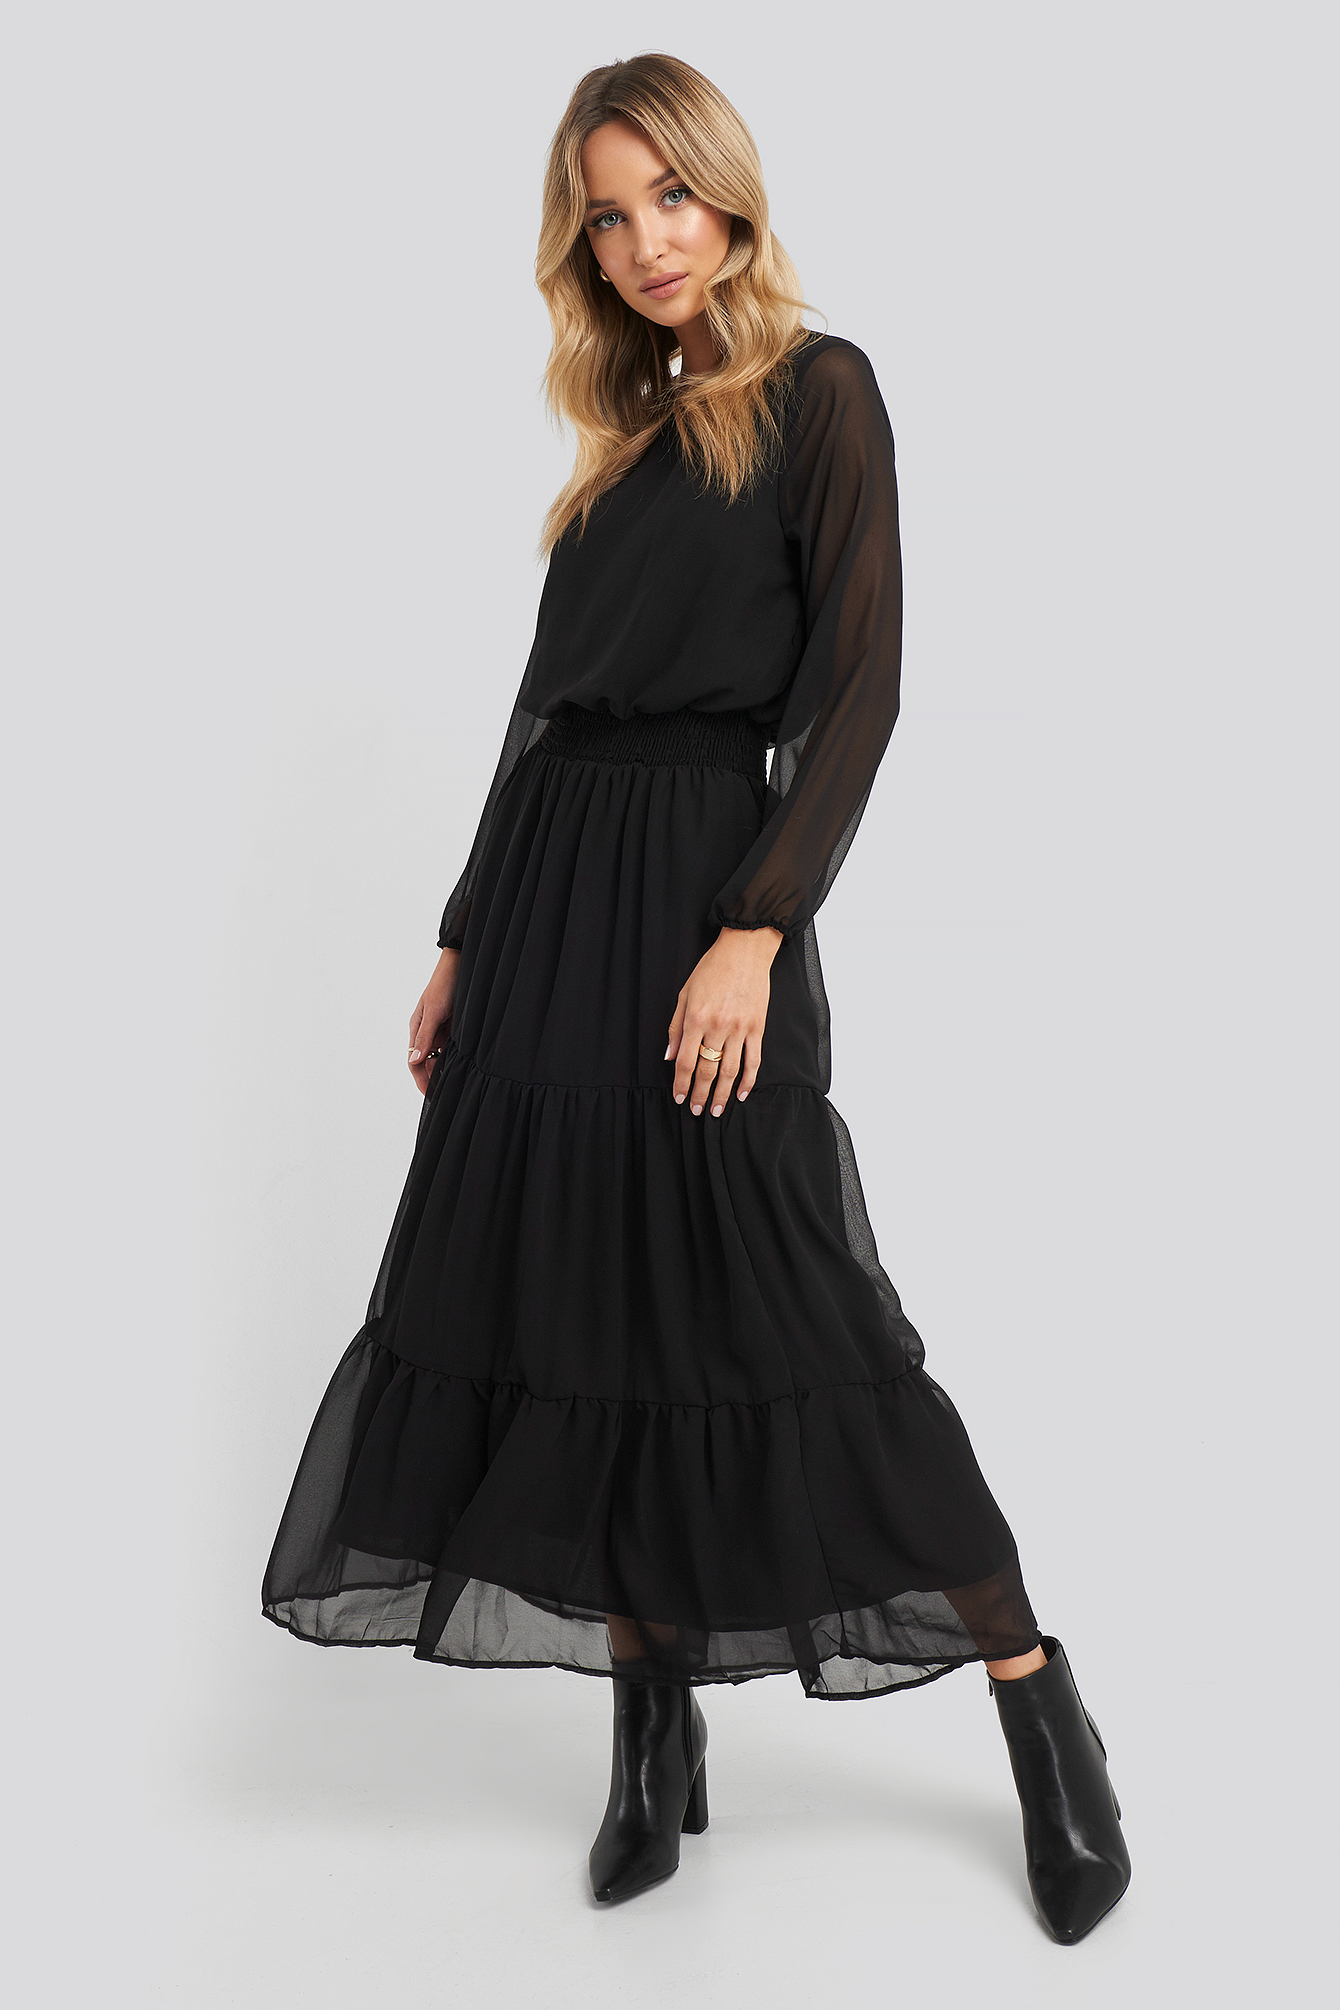 Sisters Point Nicoline-M Dress - Black